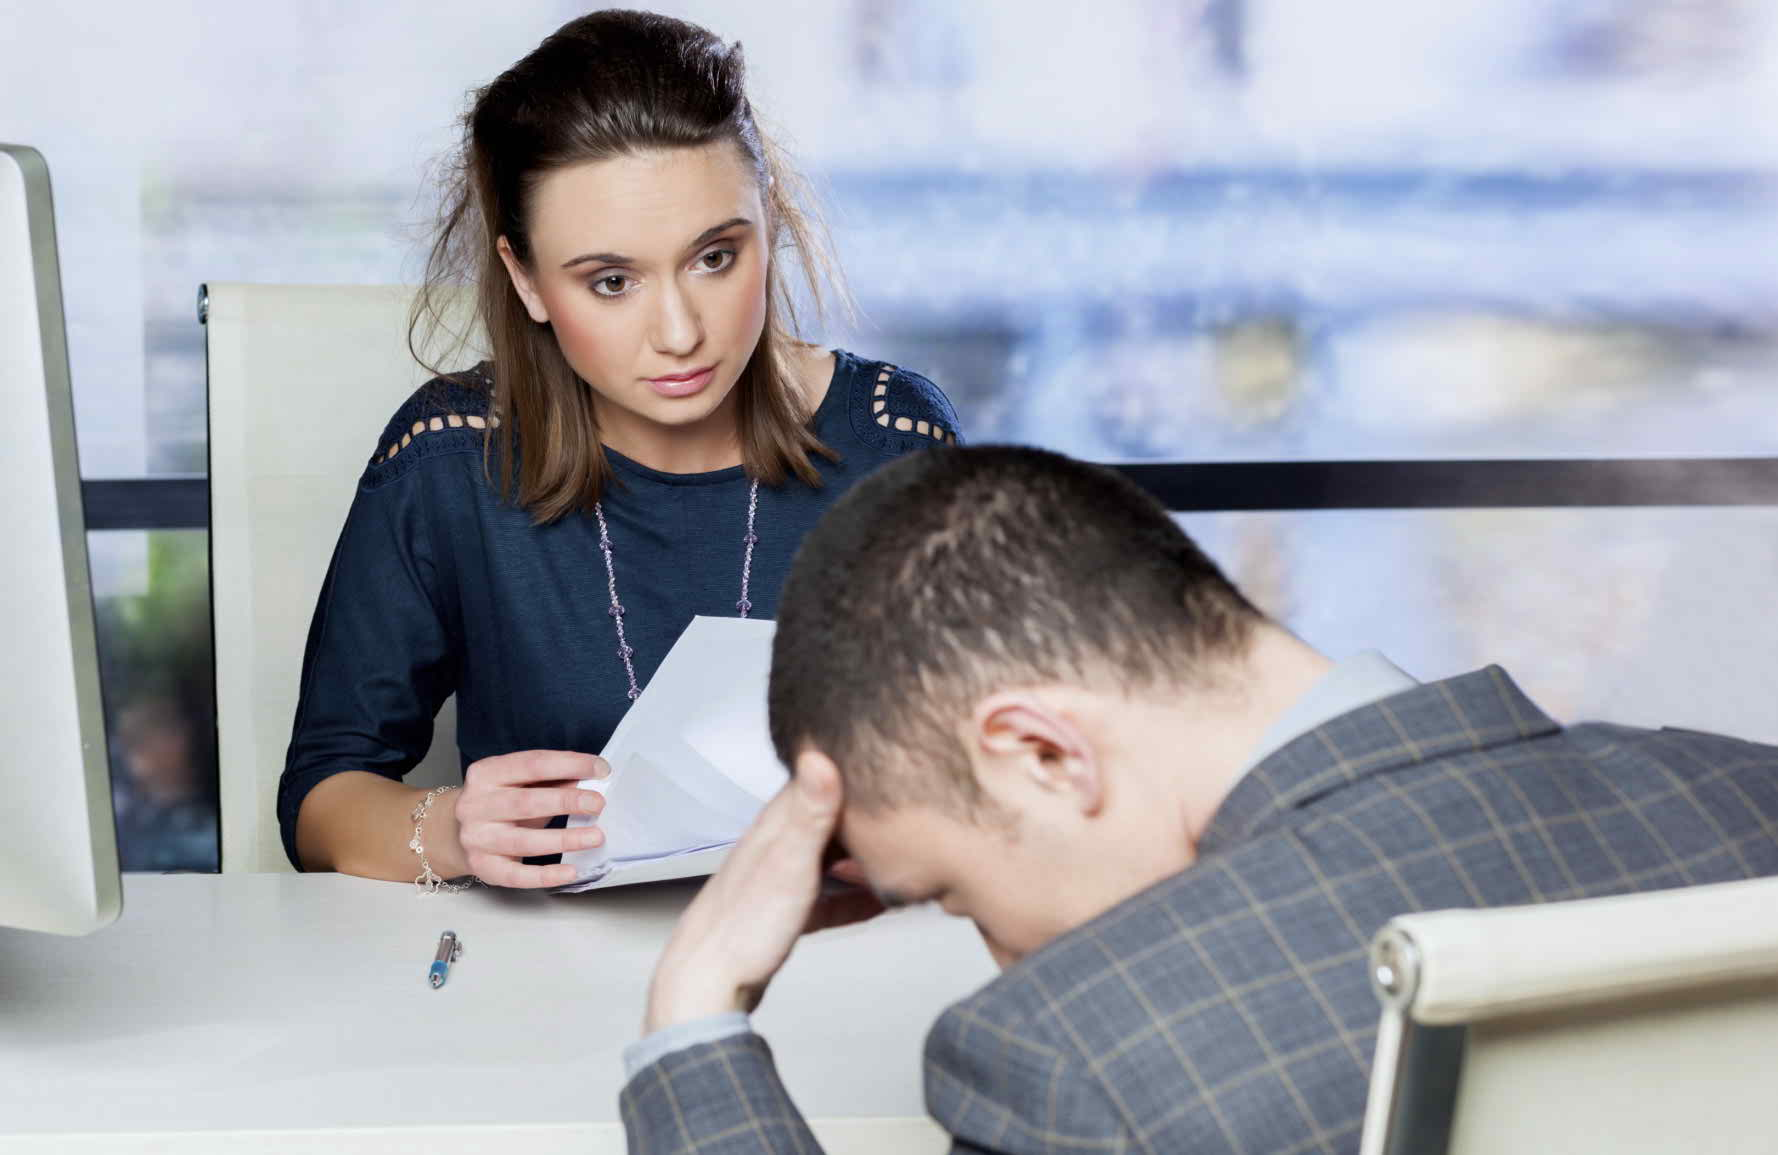 Common Resume Mistakes That Can Cost You the Job – The Recruiter ...